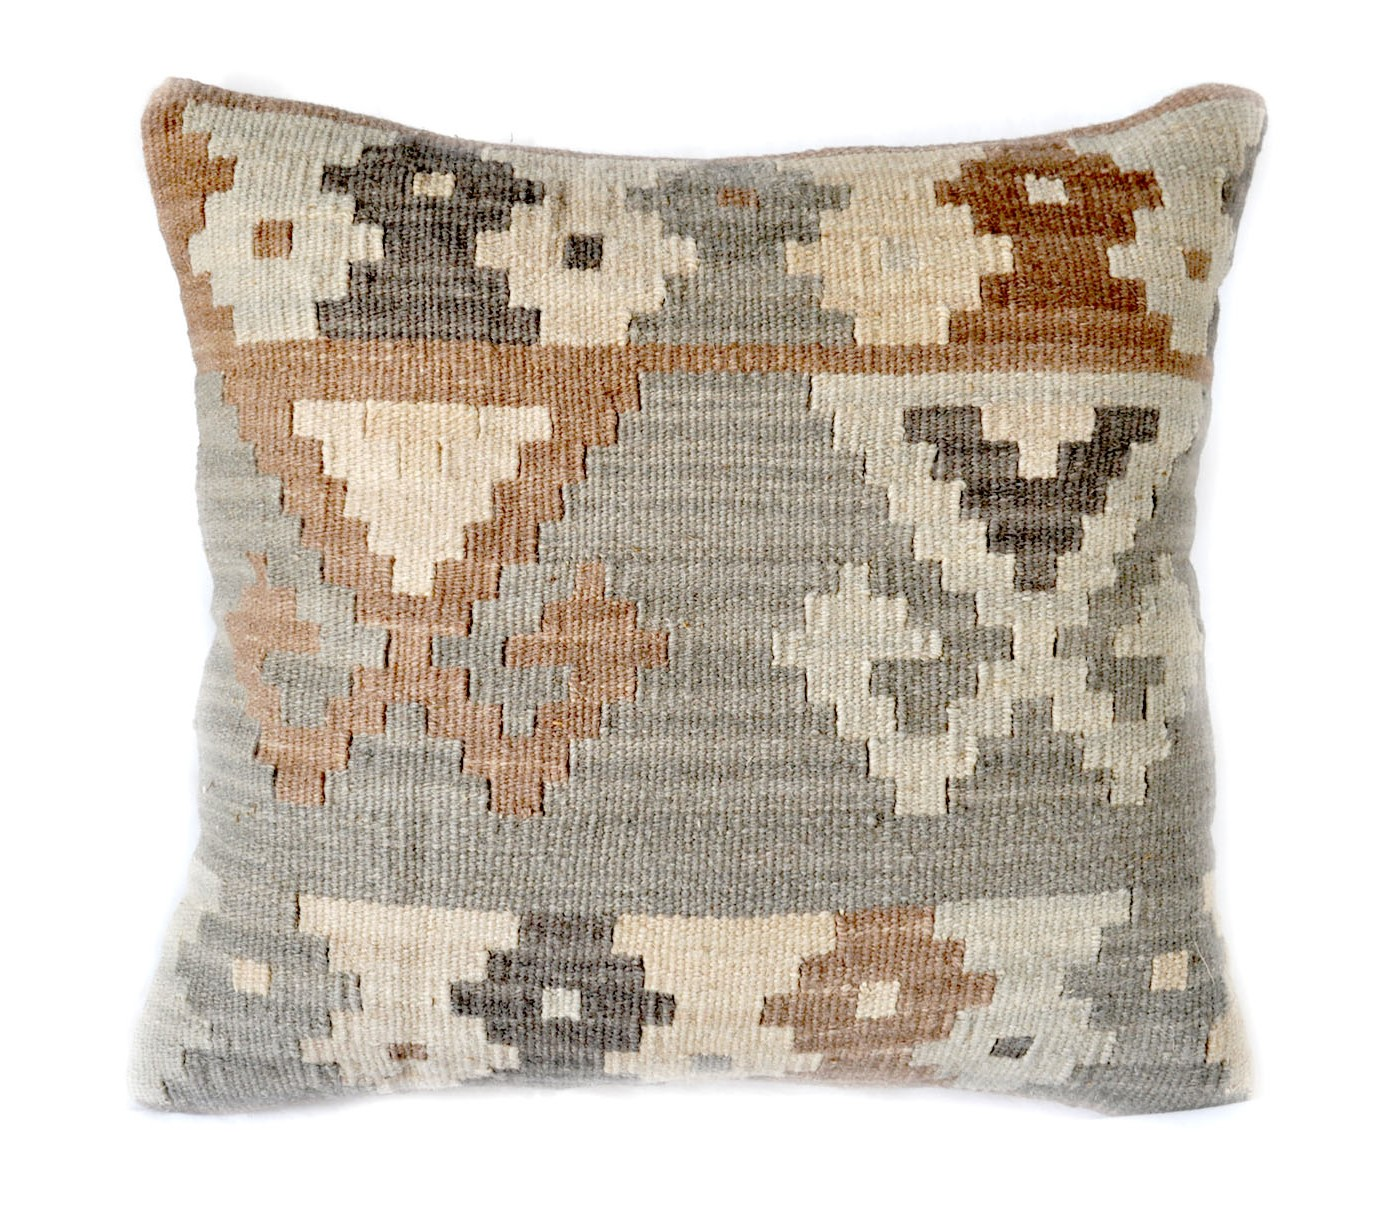 18×18 Hand-woven Wool Kilim Pillow Cover 12980984